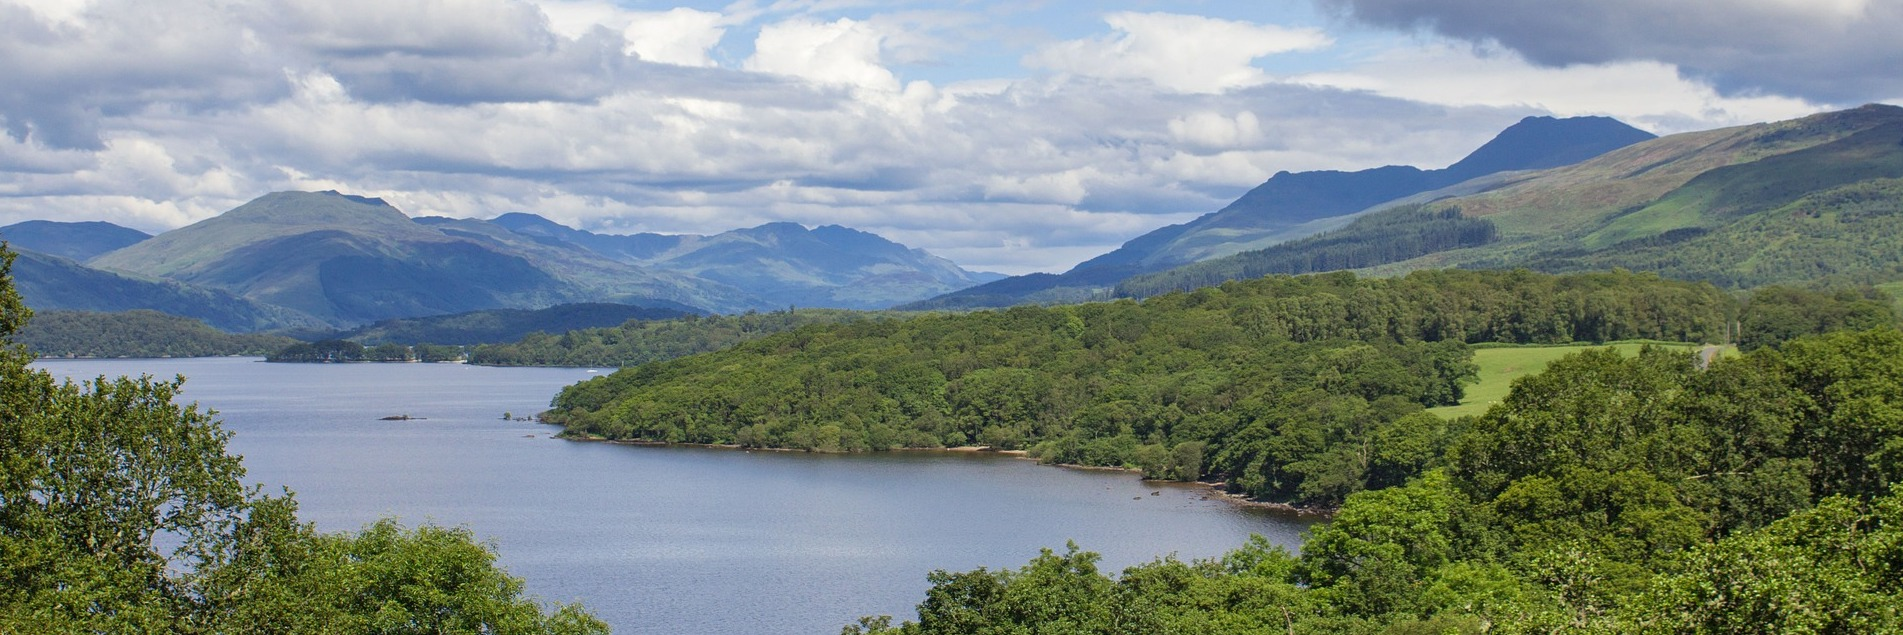 Luxury Cottages in Loch Lomond and The Trossachs